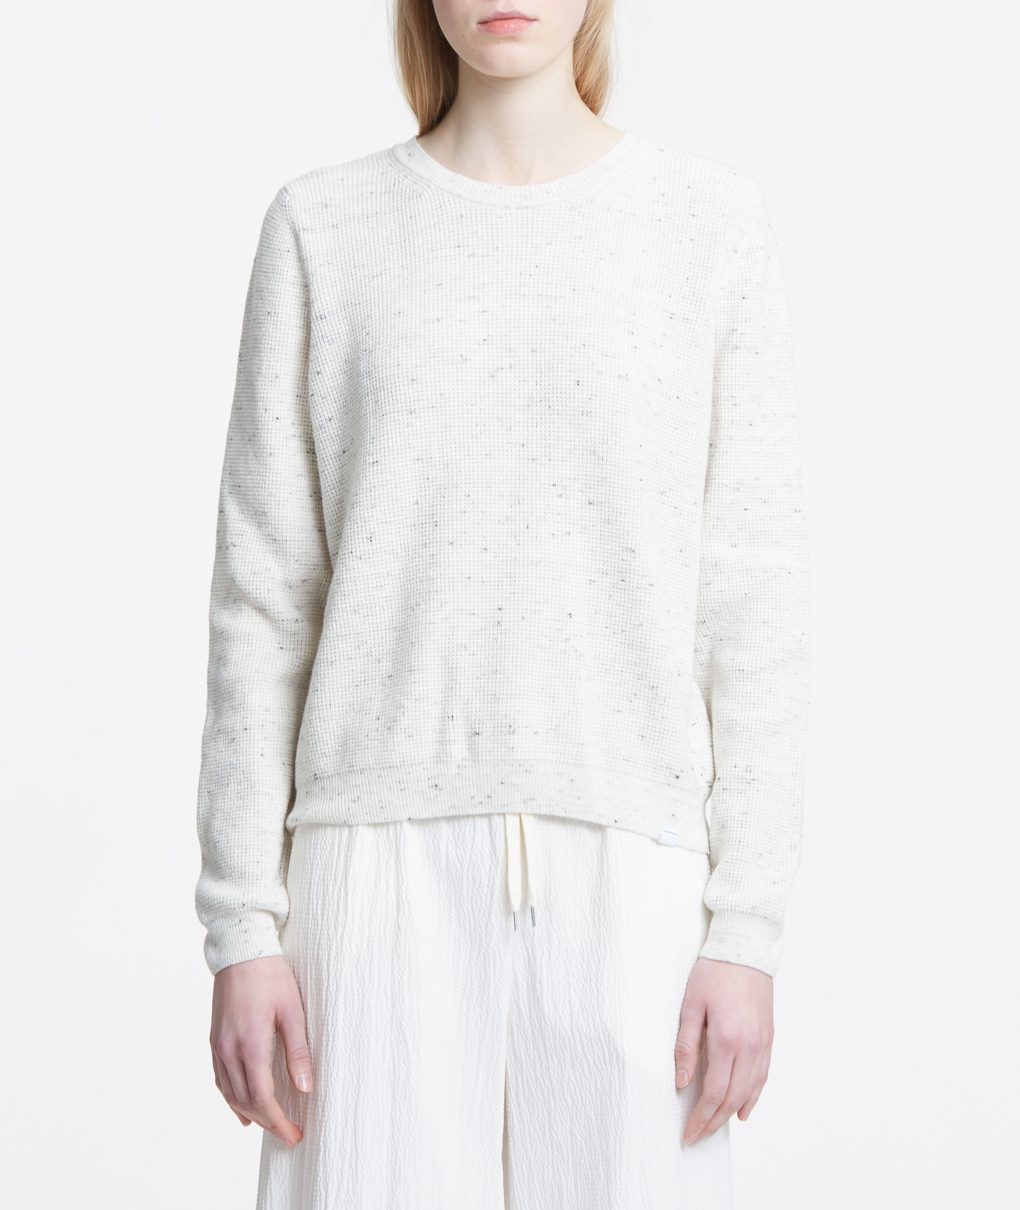 norseprojects_sweater2